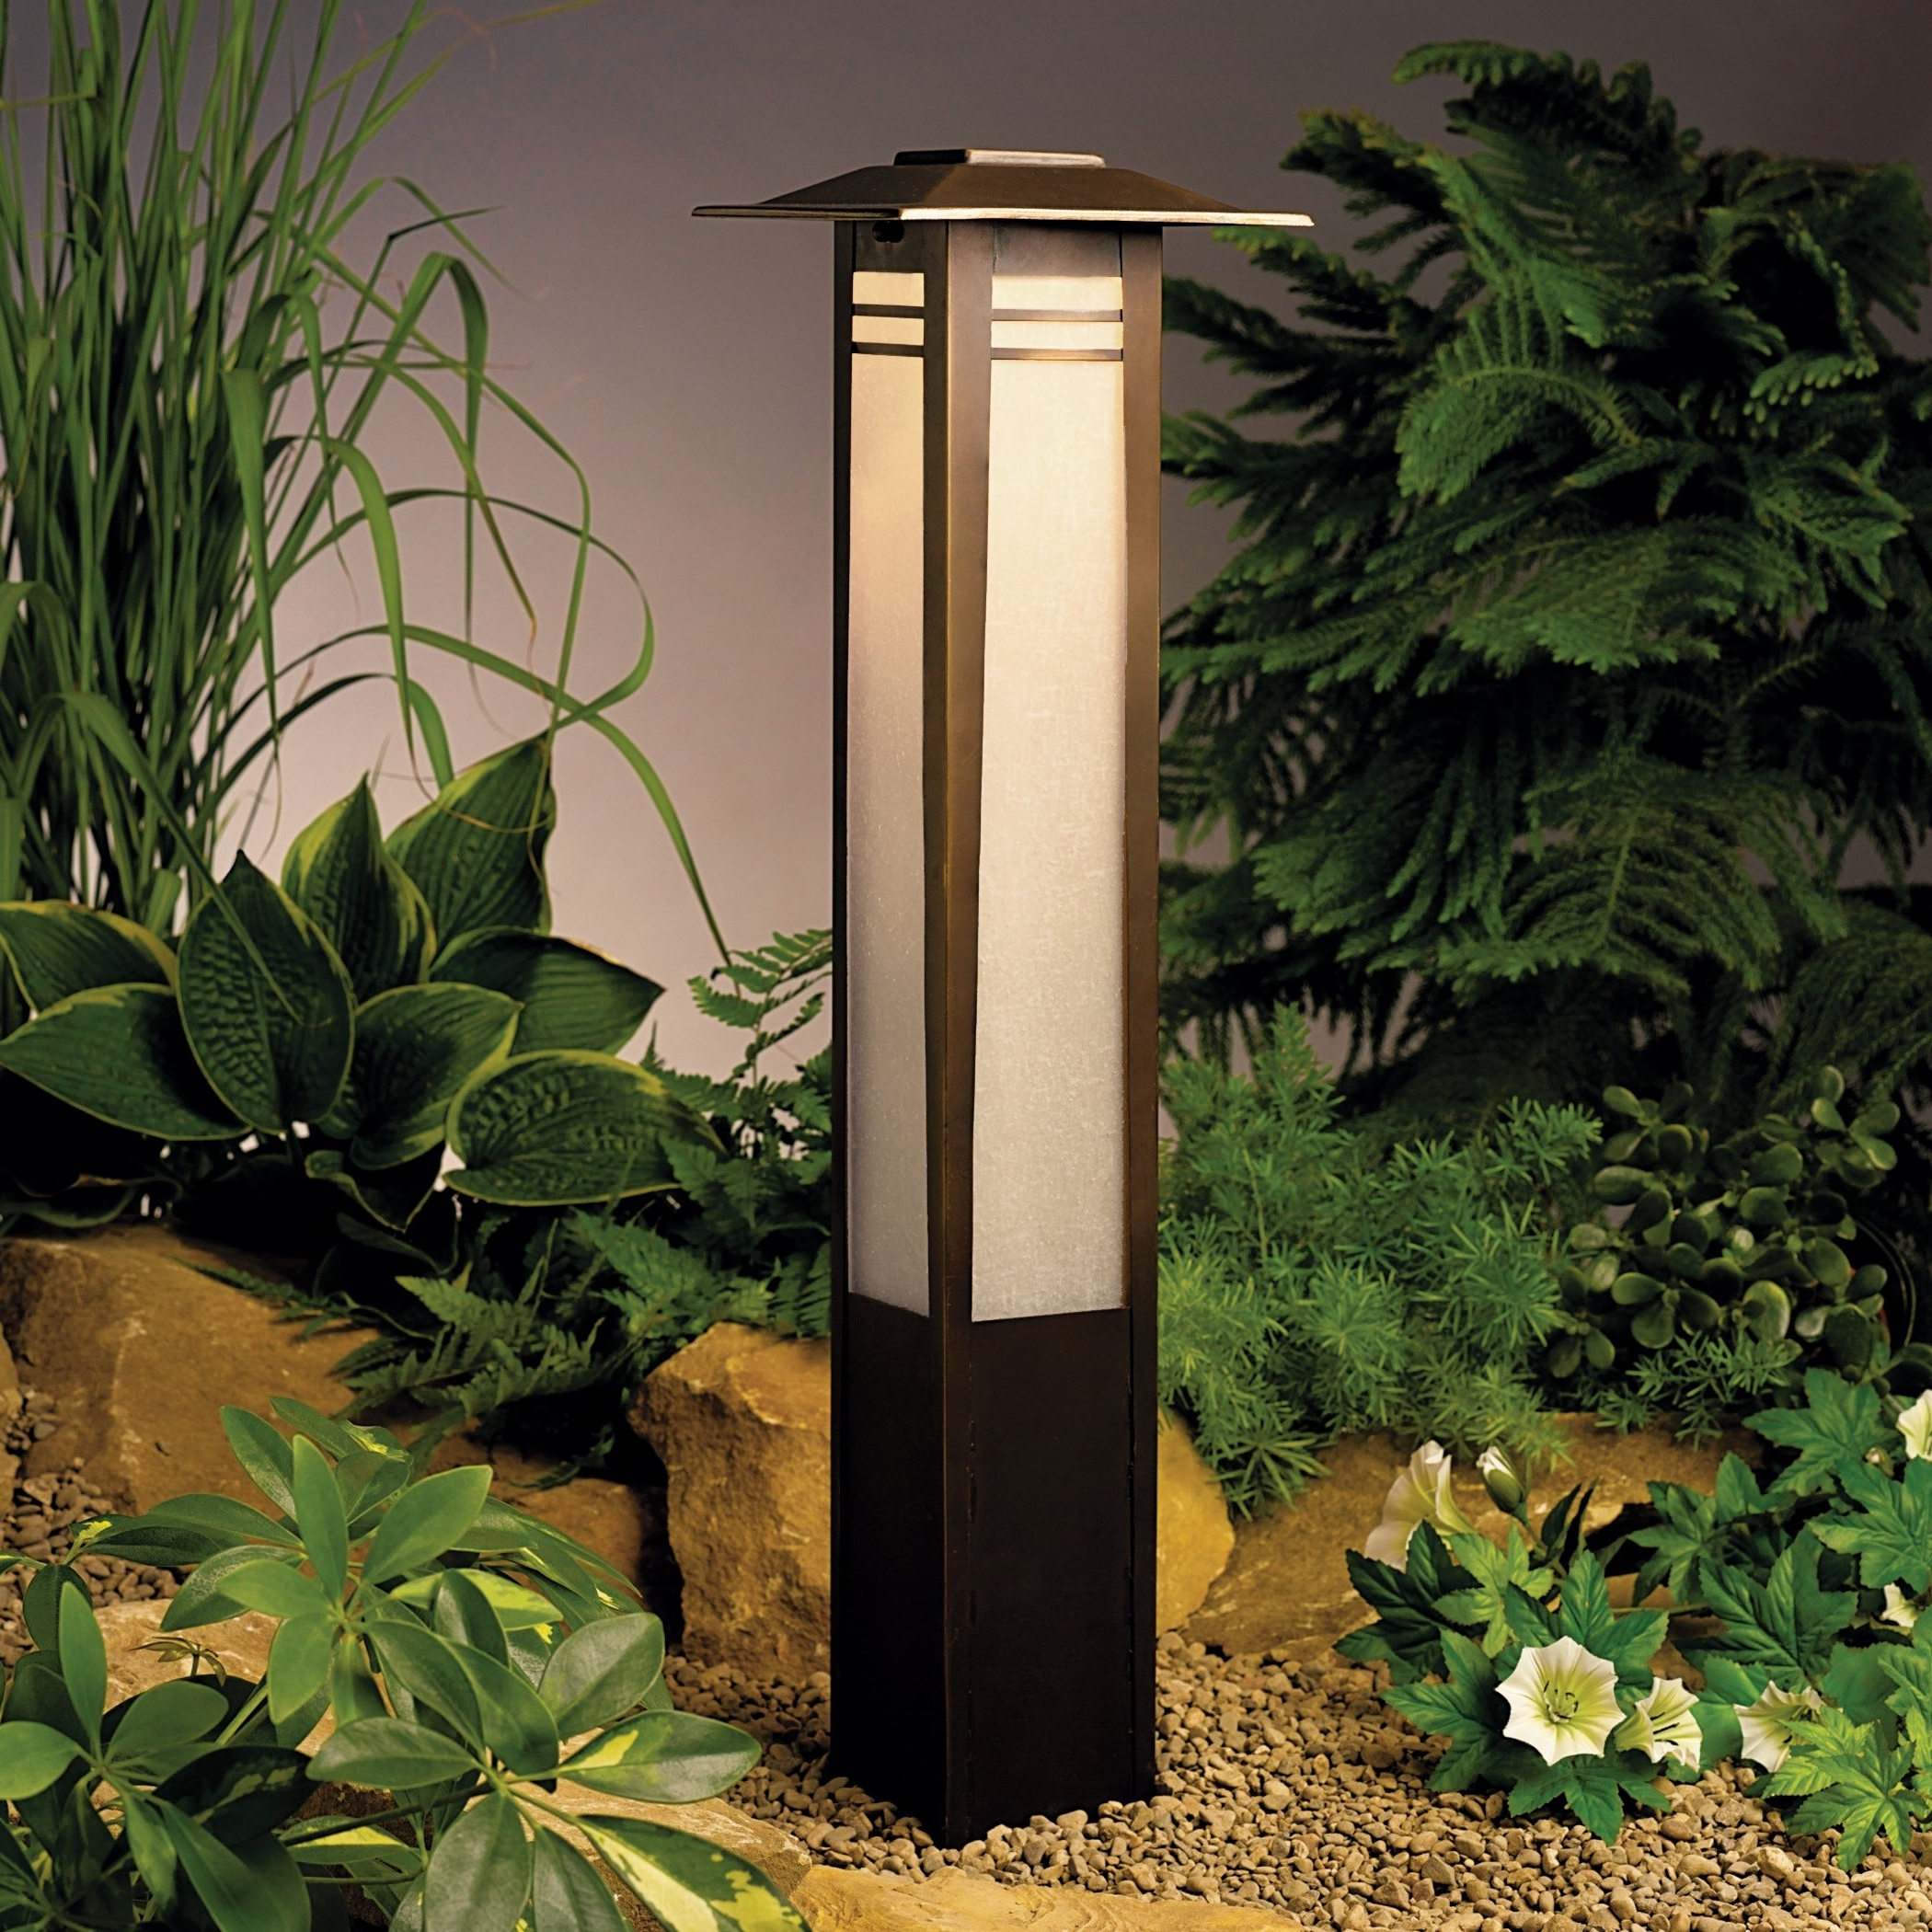 Lighting : Singular Quality Outdoor Lighting Image Design Wall Intended For Most Up To Date Modern Led Solar Garden Lighting Fixture (View 20 of 20)